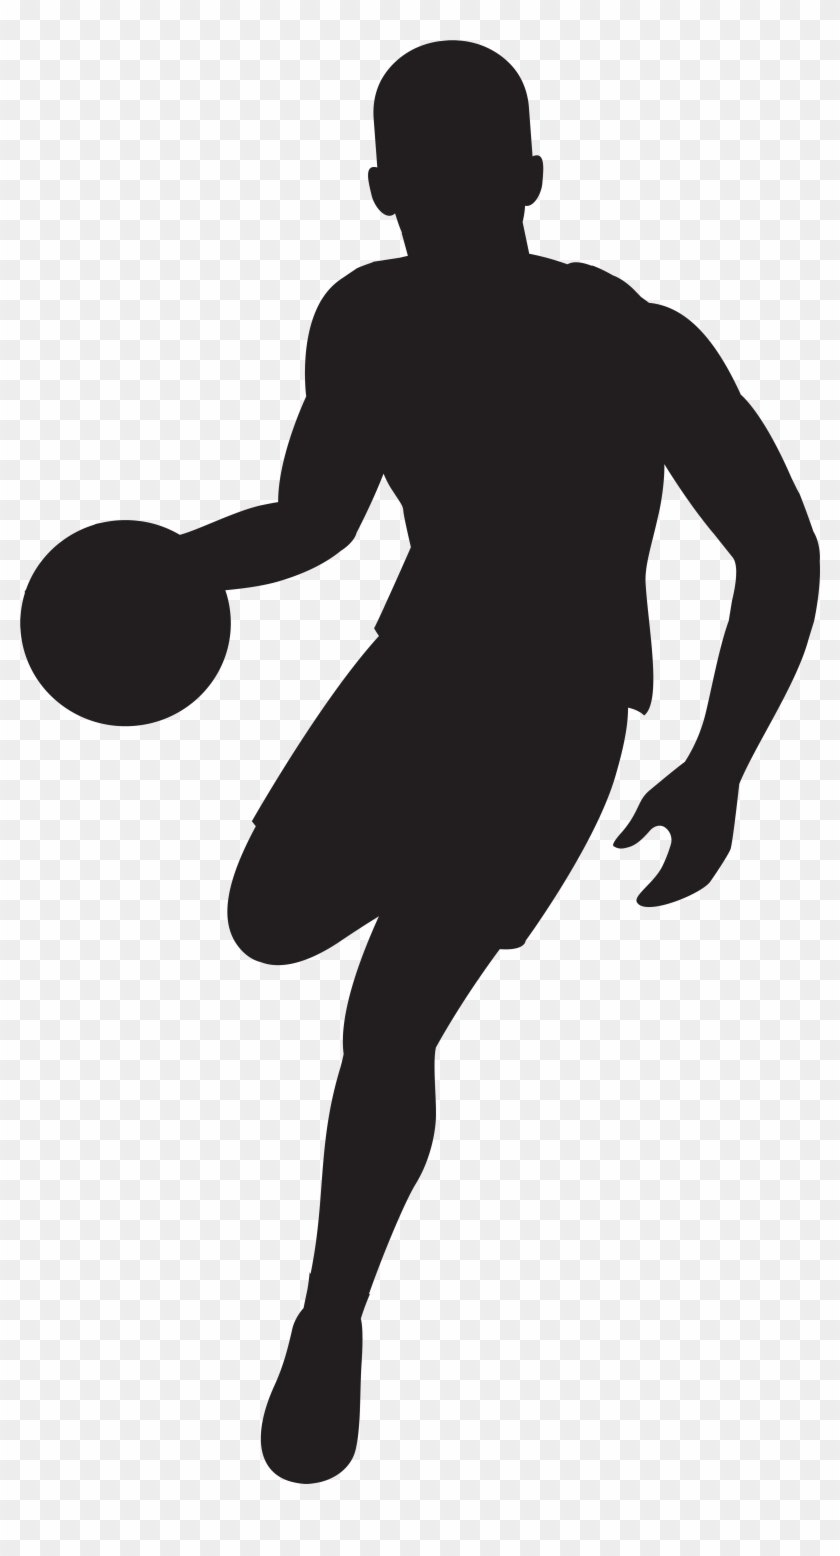 Basketball Player Silhouette Clip Art Imageu200b Gallery - Basketball Player Silhouette Free #35448